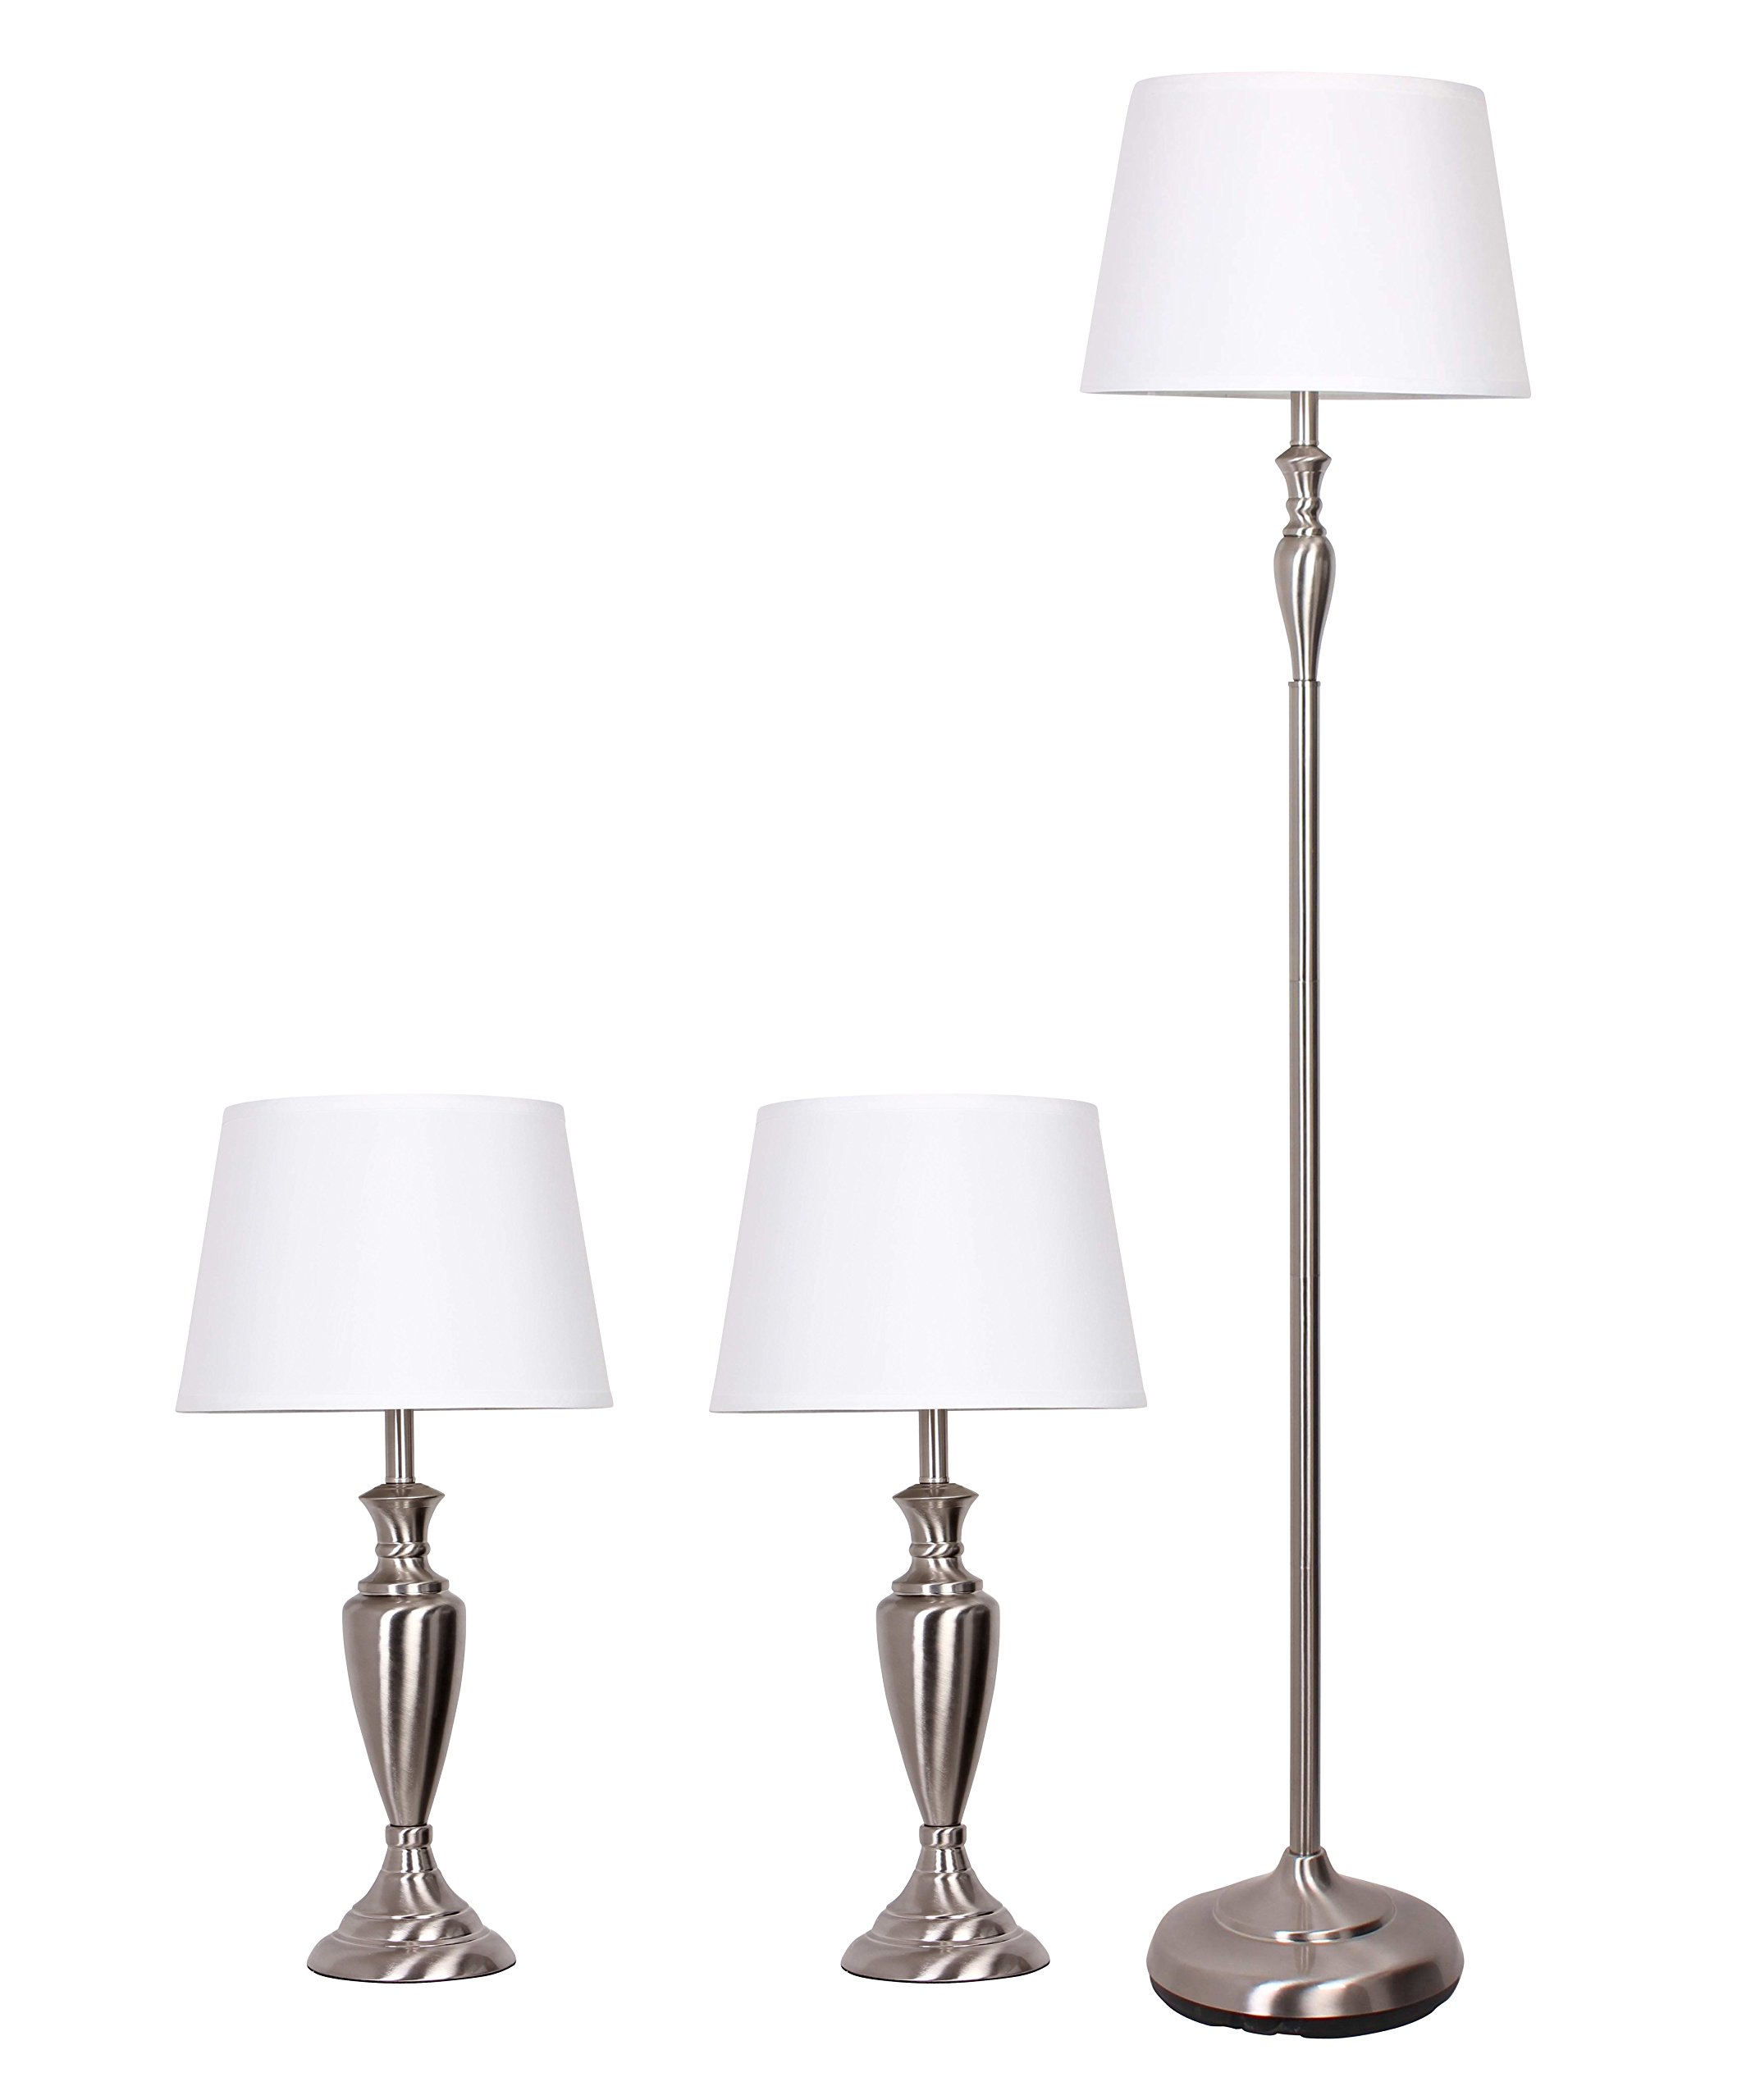 Catalina 18078-001 Combo 3-Piece Lamp Set with Brushed Nickel Finish and White Modified Drum Shades, by Catalina Lighting